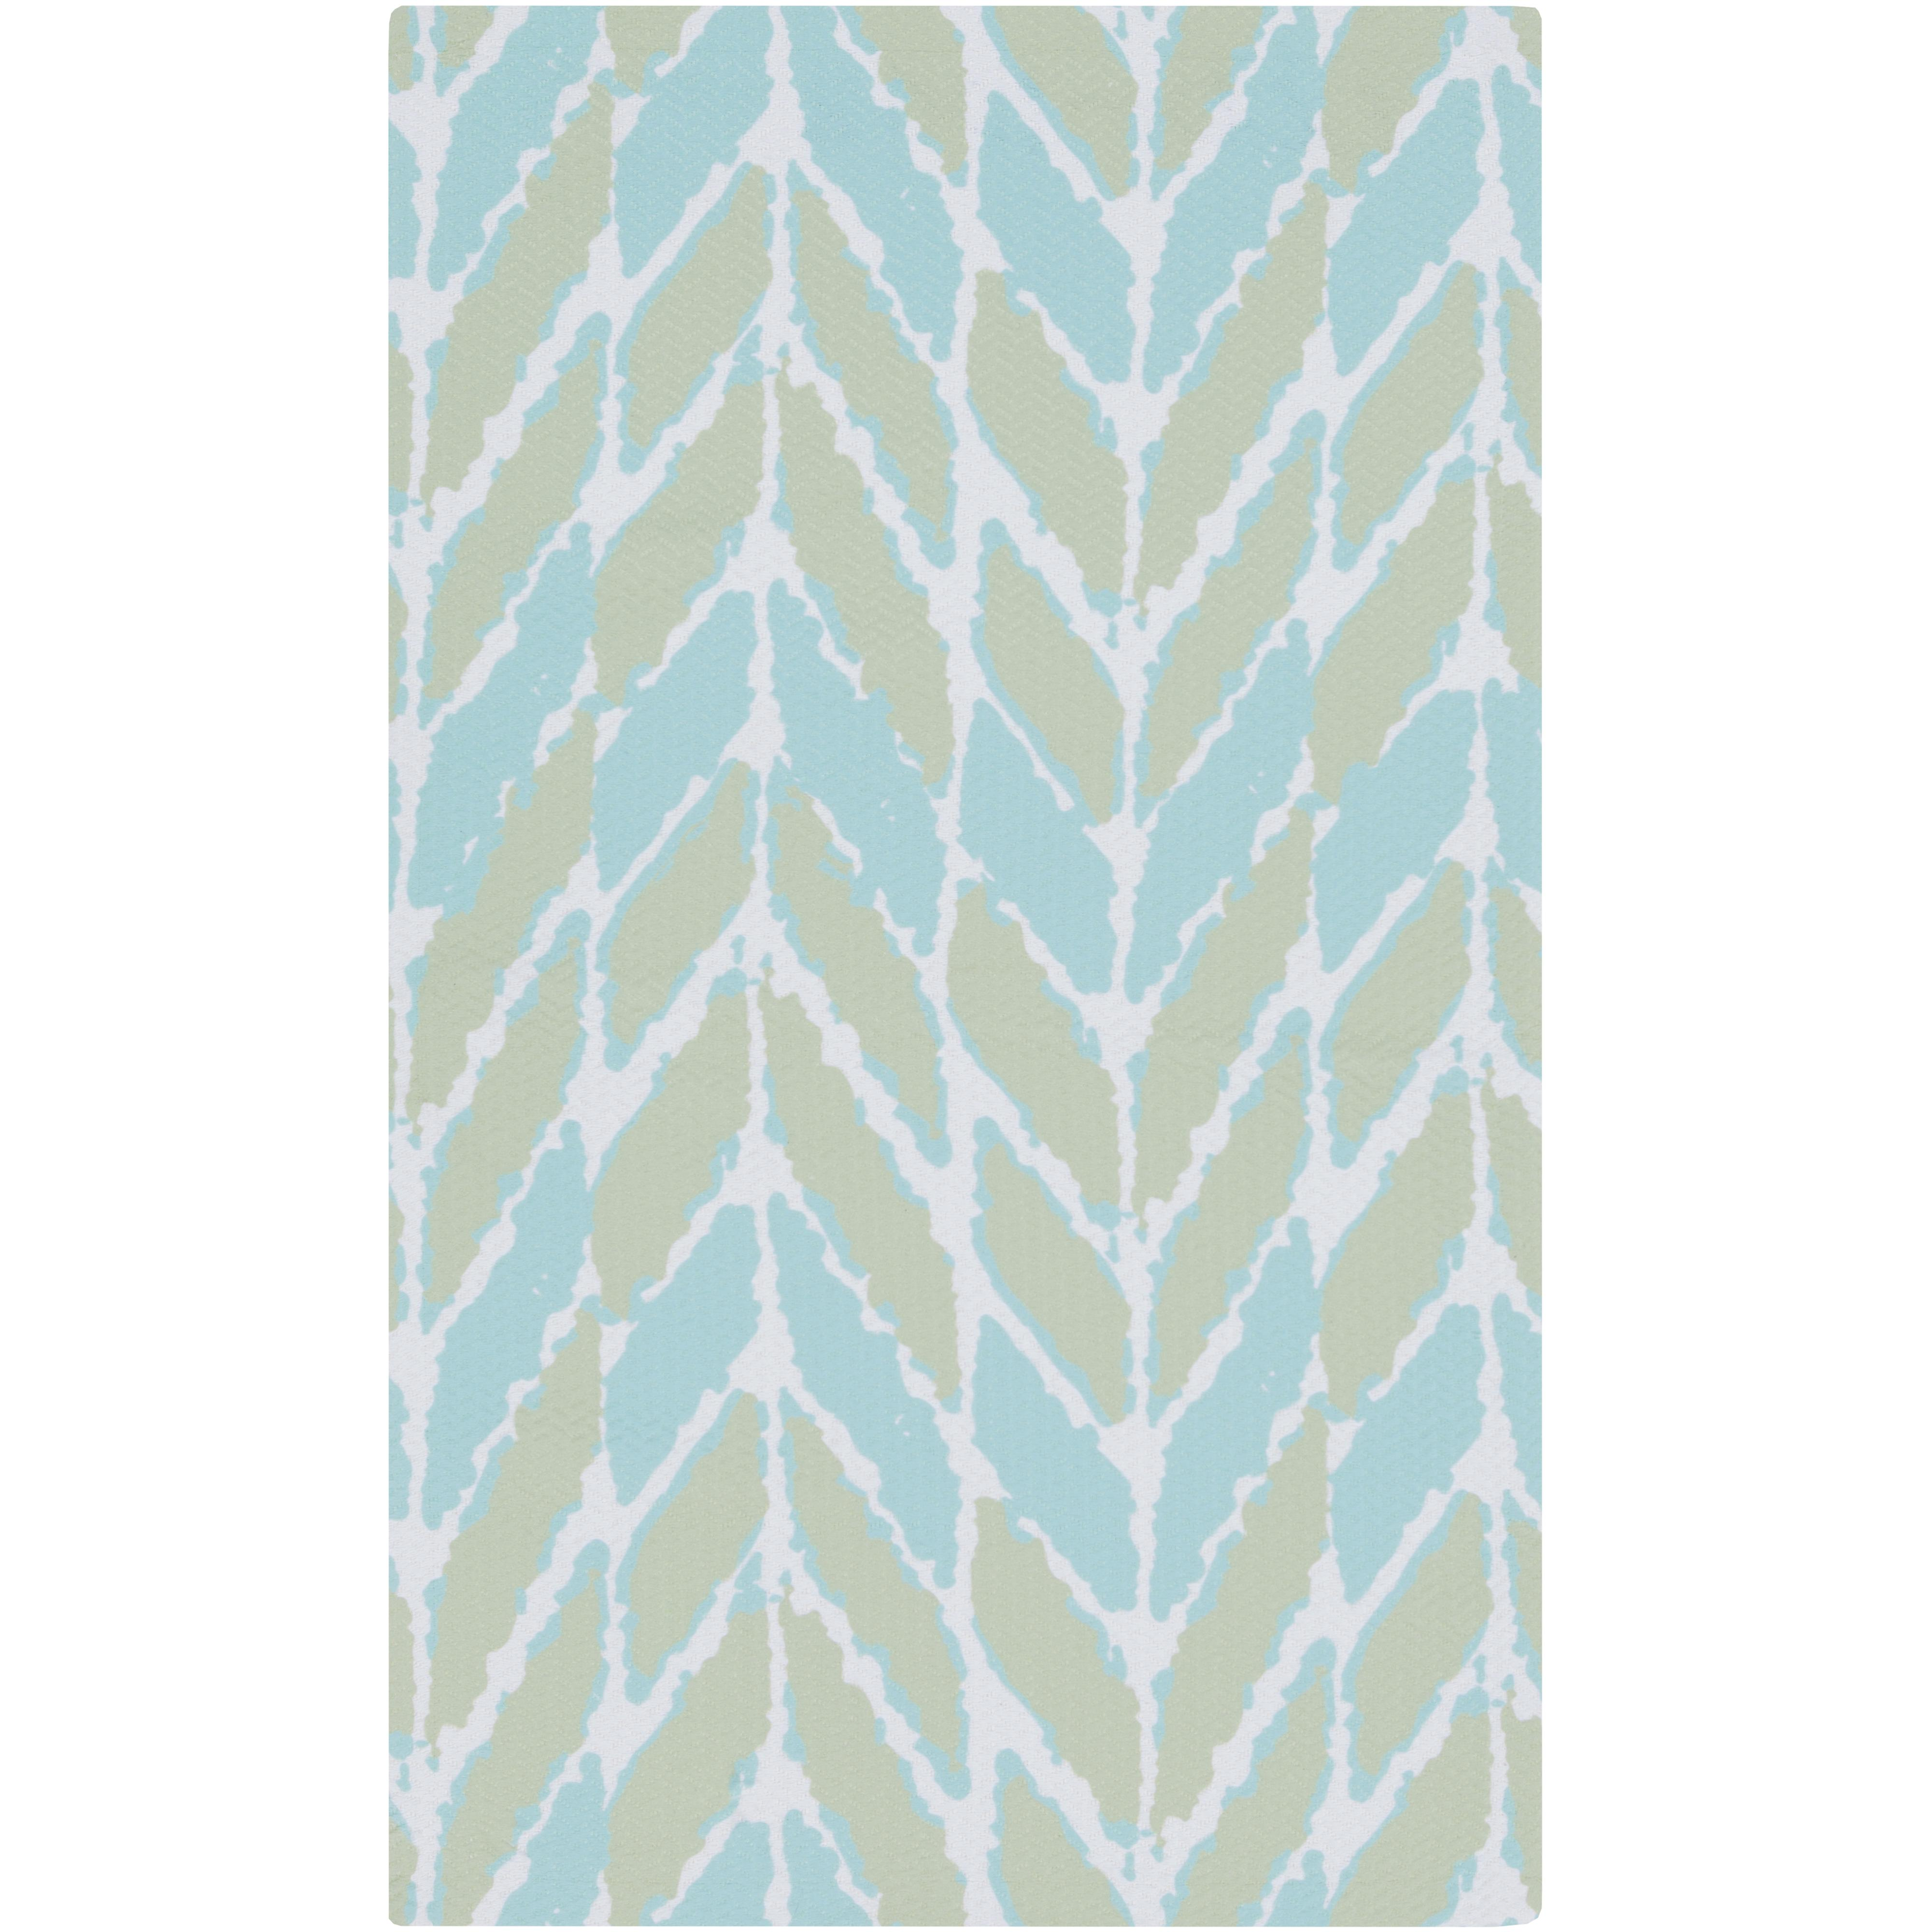 Surya Rugs Cape cod 4' x 6' - Item Number: CCD1003-46